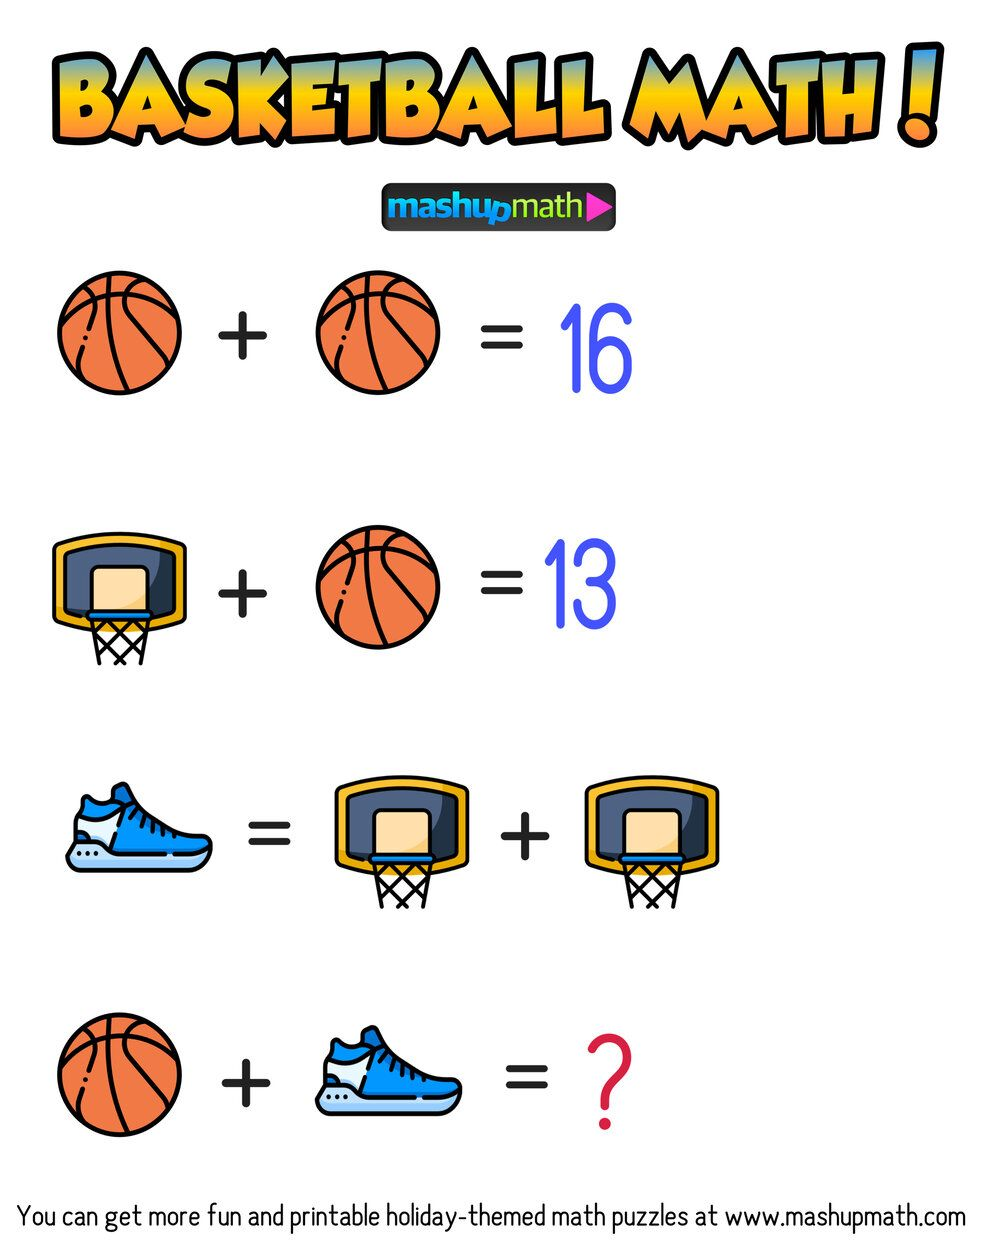 Are Your Kids Ready For These Basketball Math Puzzles Mashup Math Basketball Math Maths Puzzles Math Quizzes